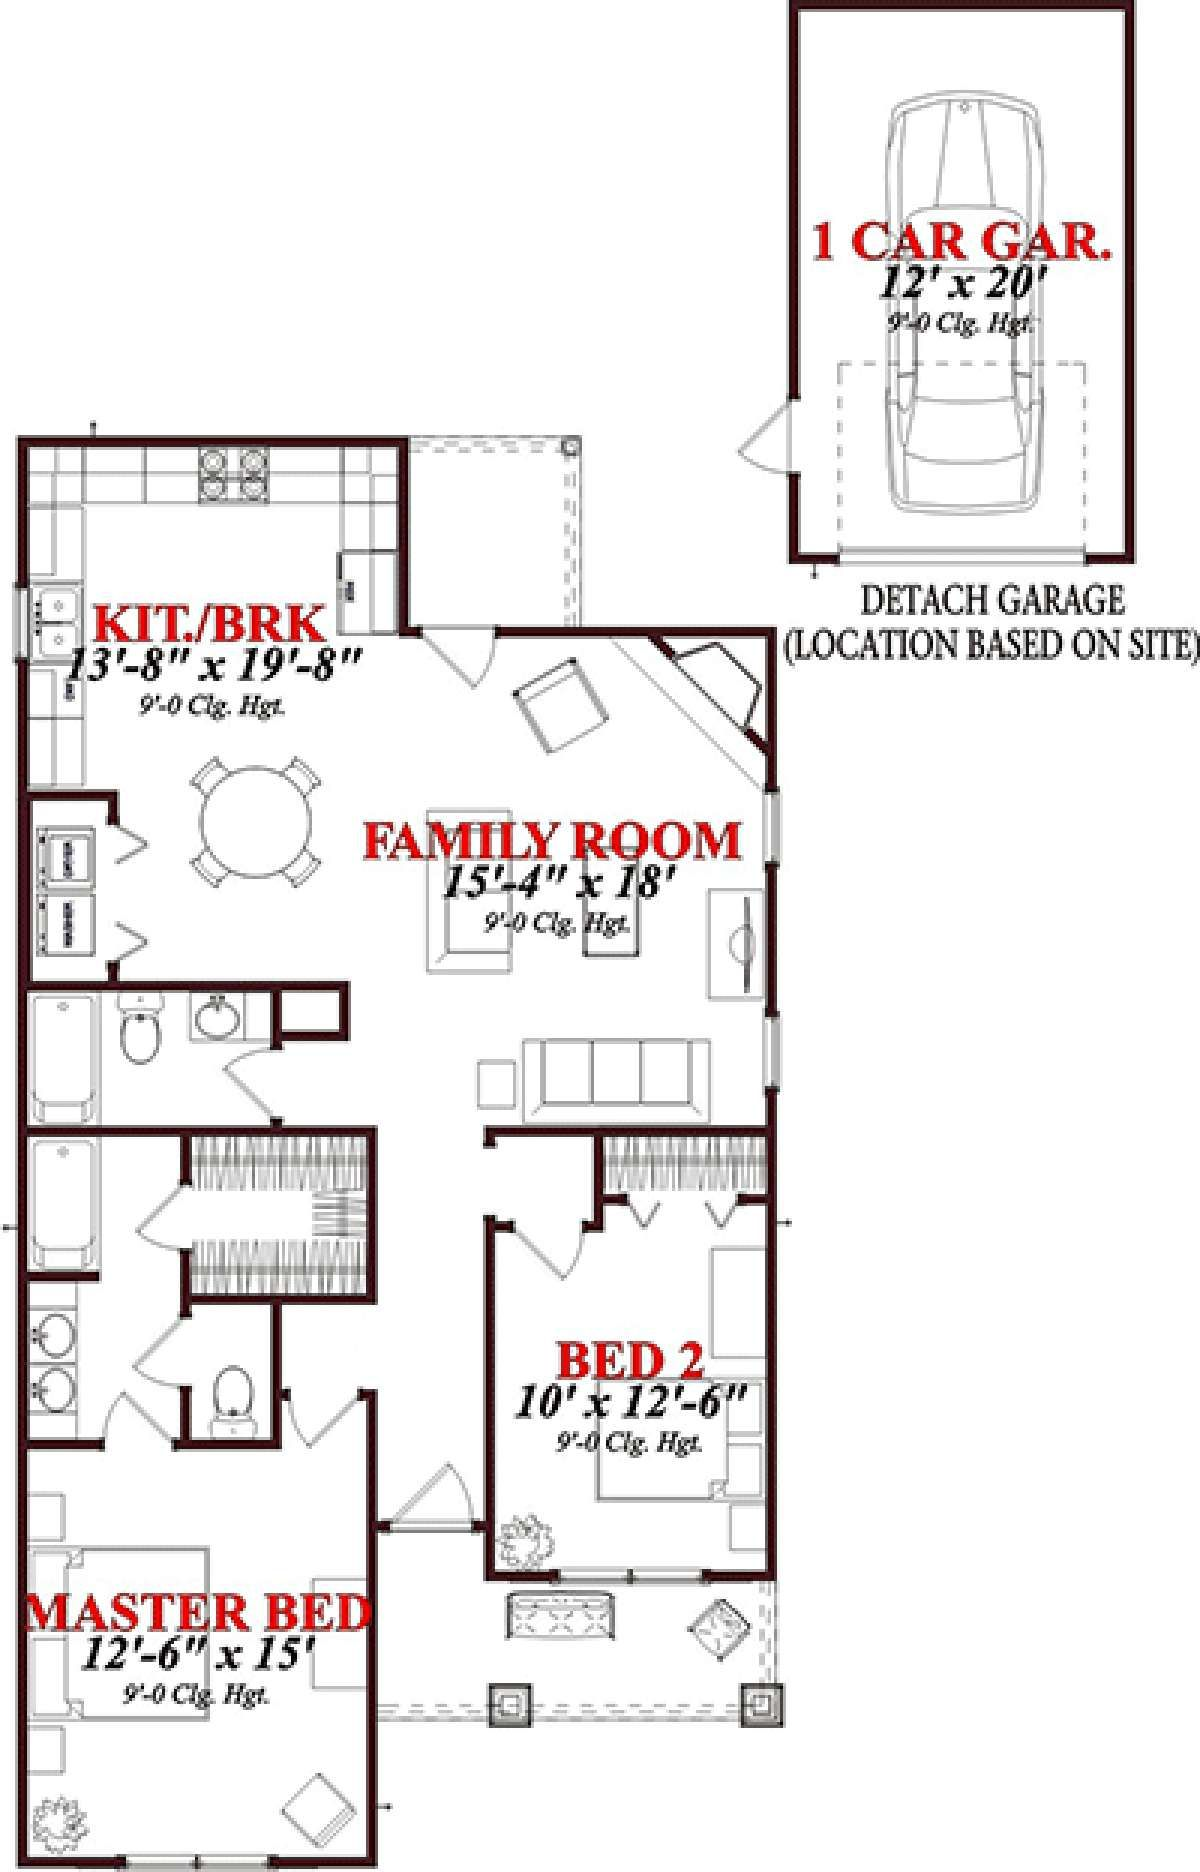 House Plan 1070 00155 Small Plan 1 205 Square Feet 2 Bedrooms 2 Bathrooms In 2020 Cottage Style House Plans House Plans Bungalow House Plans